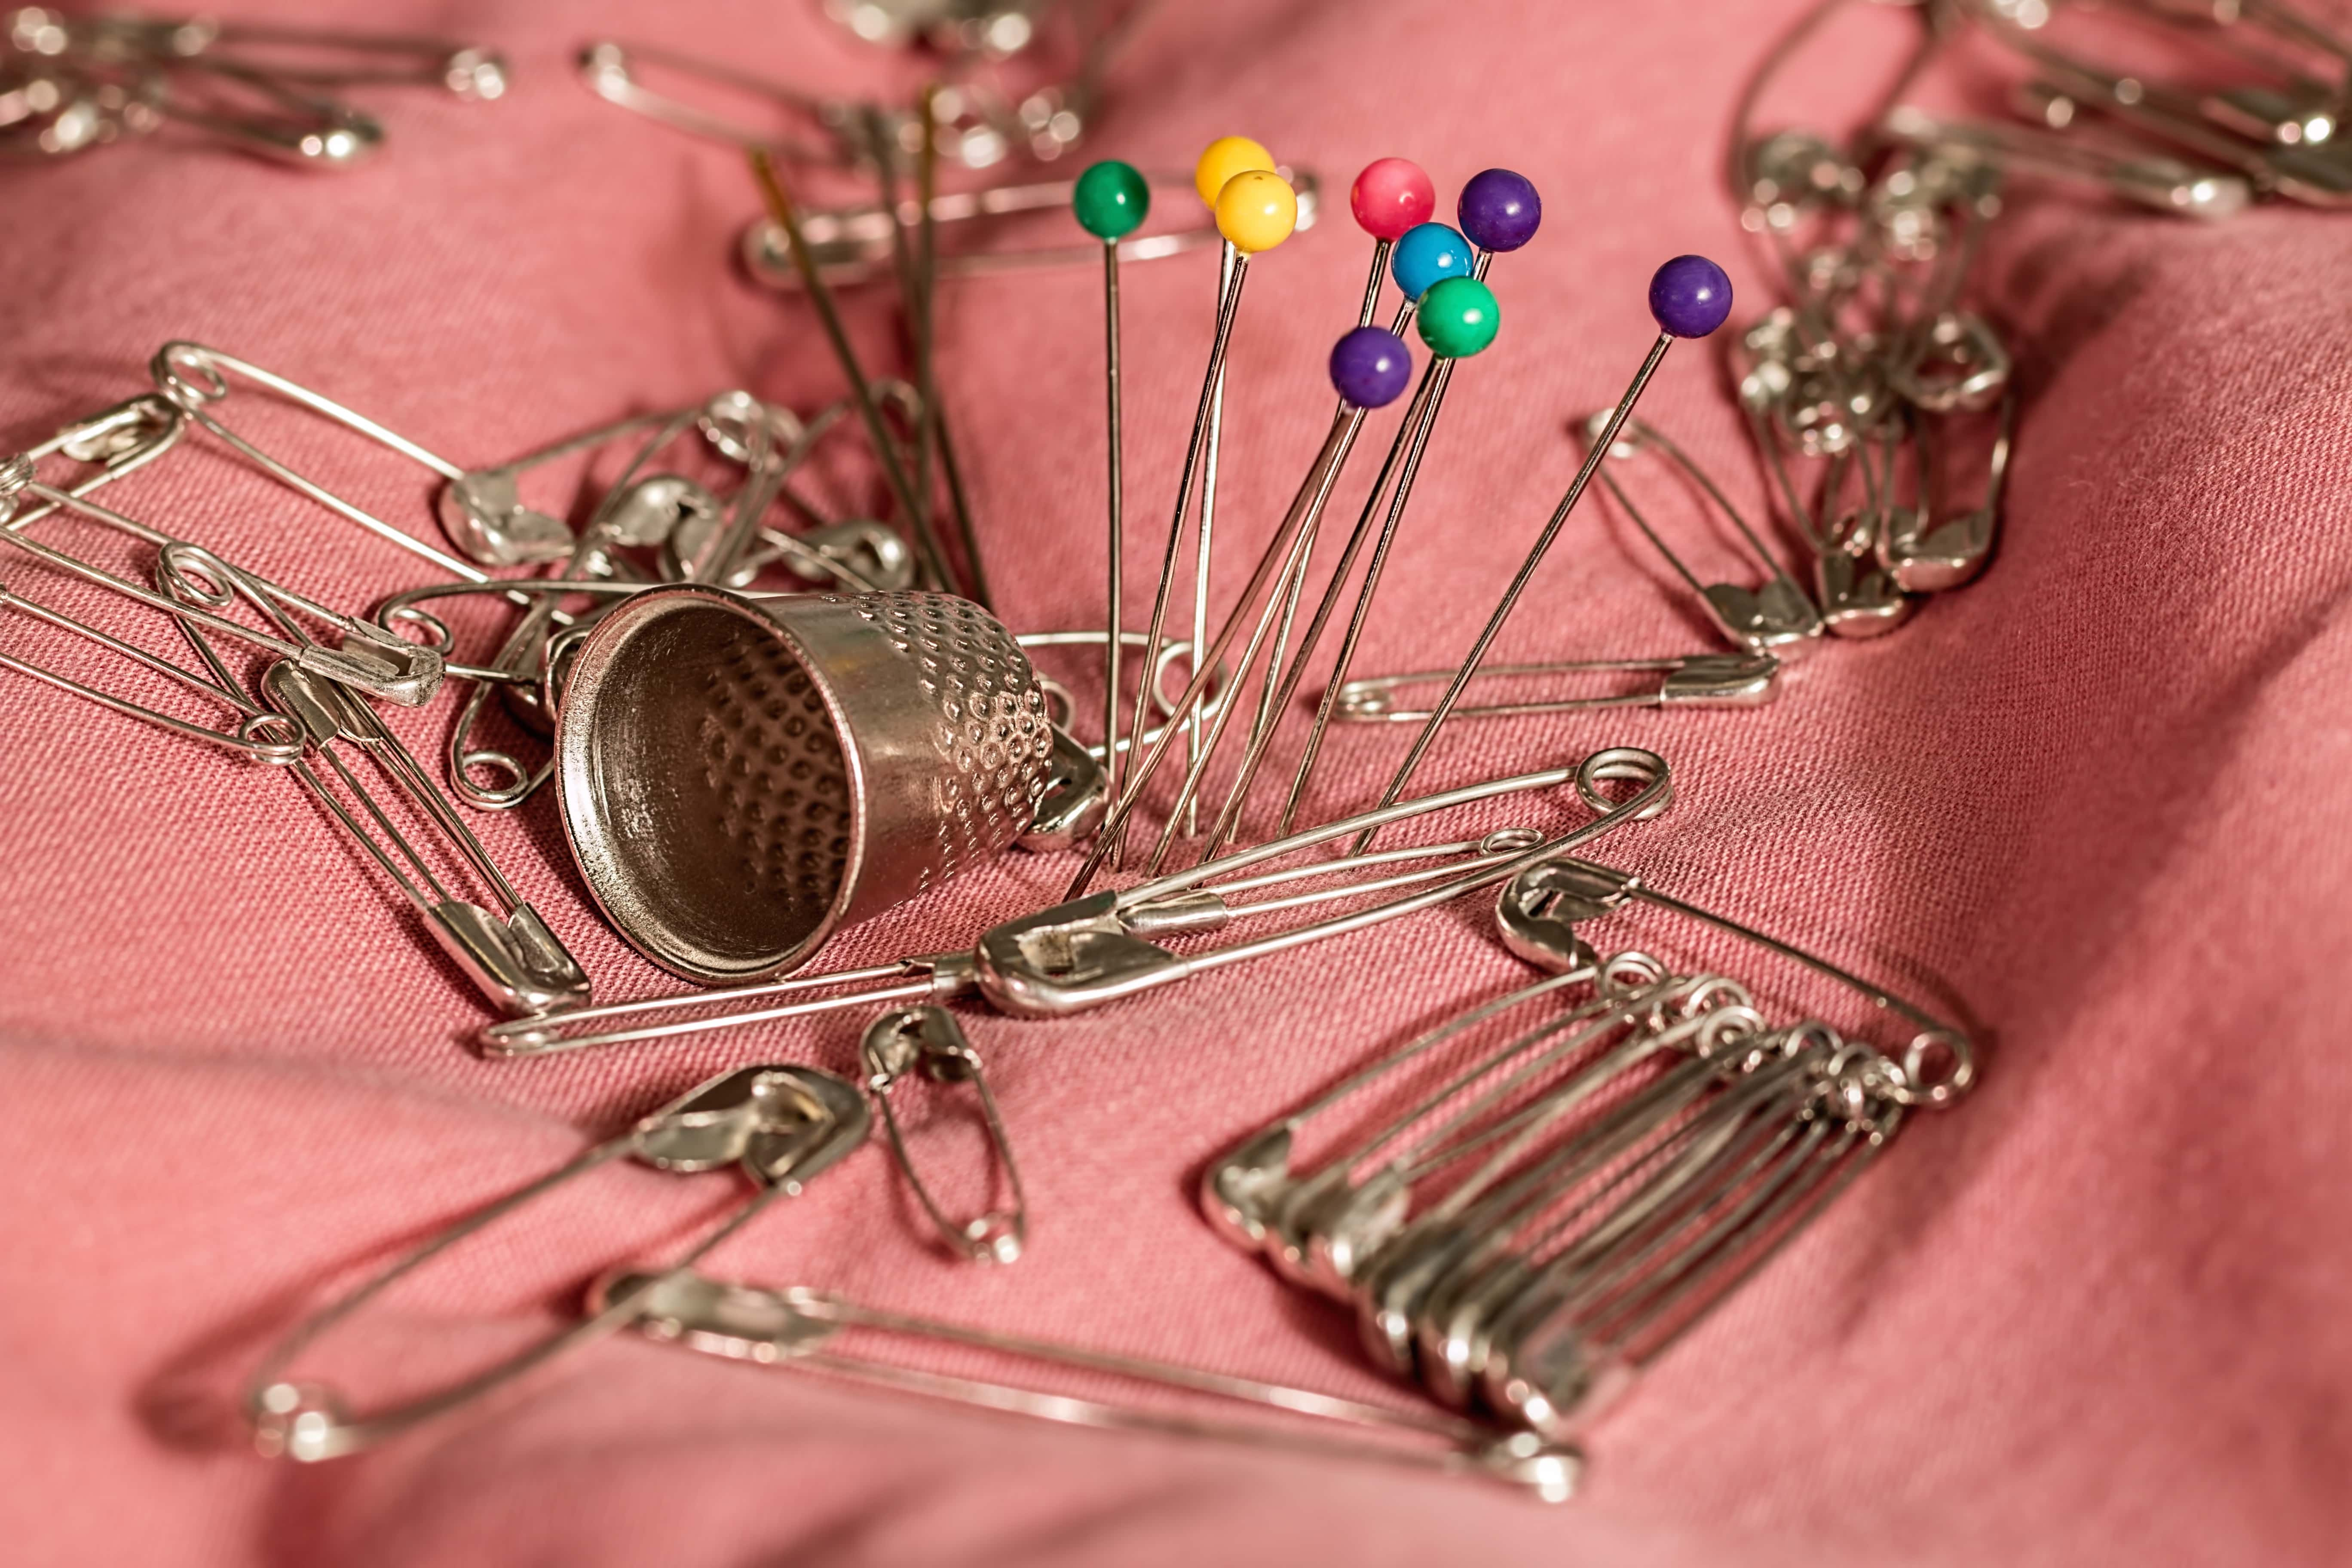 Sewing Items